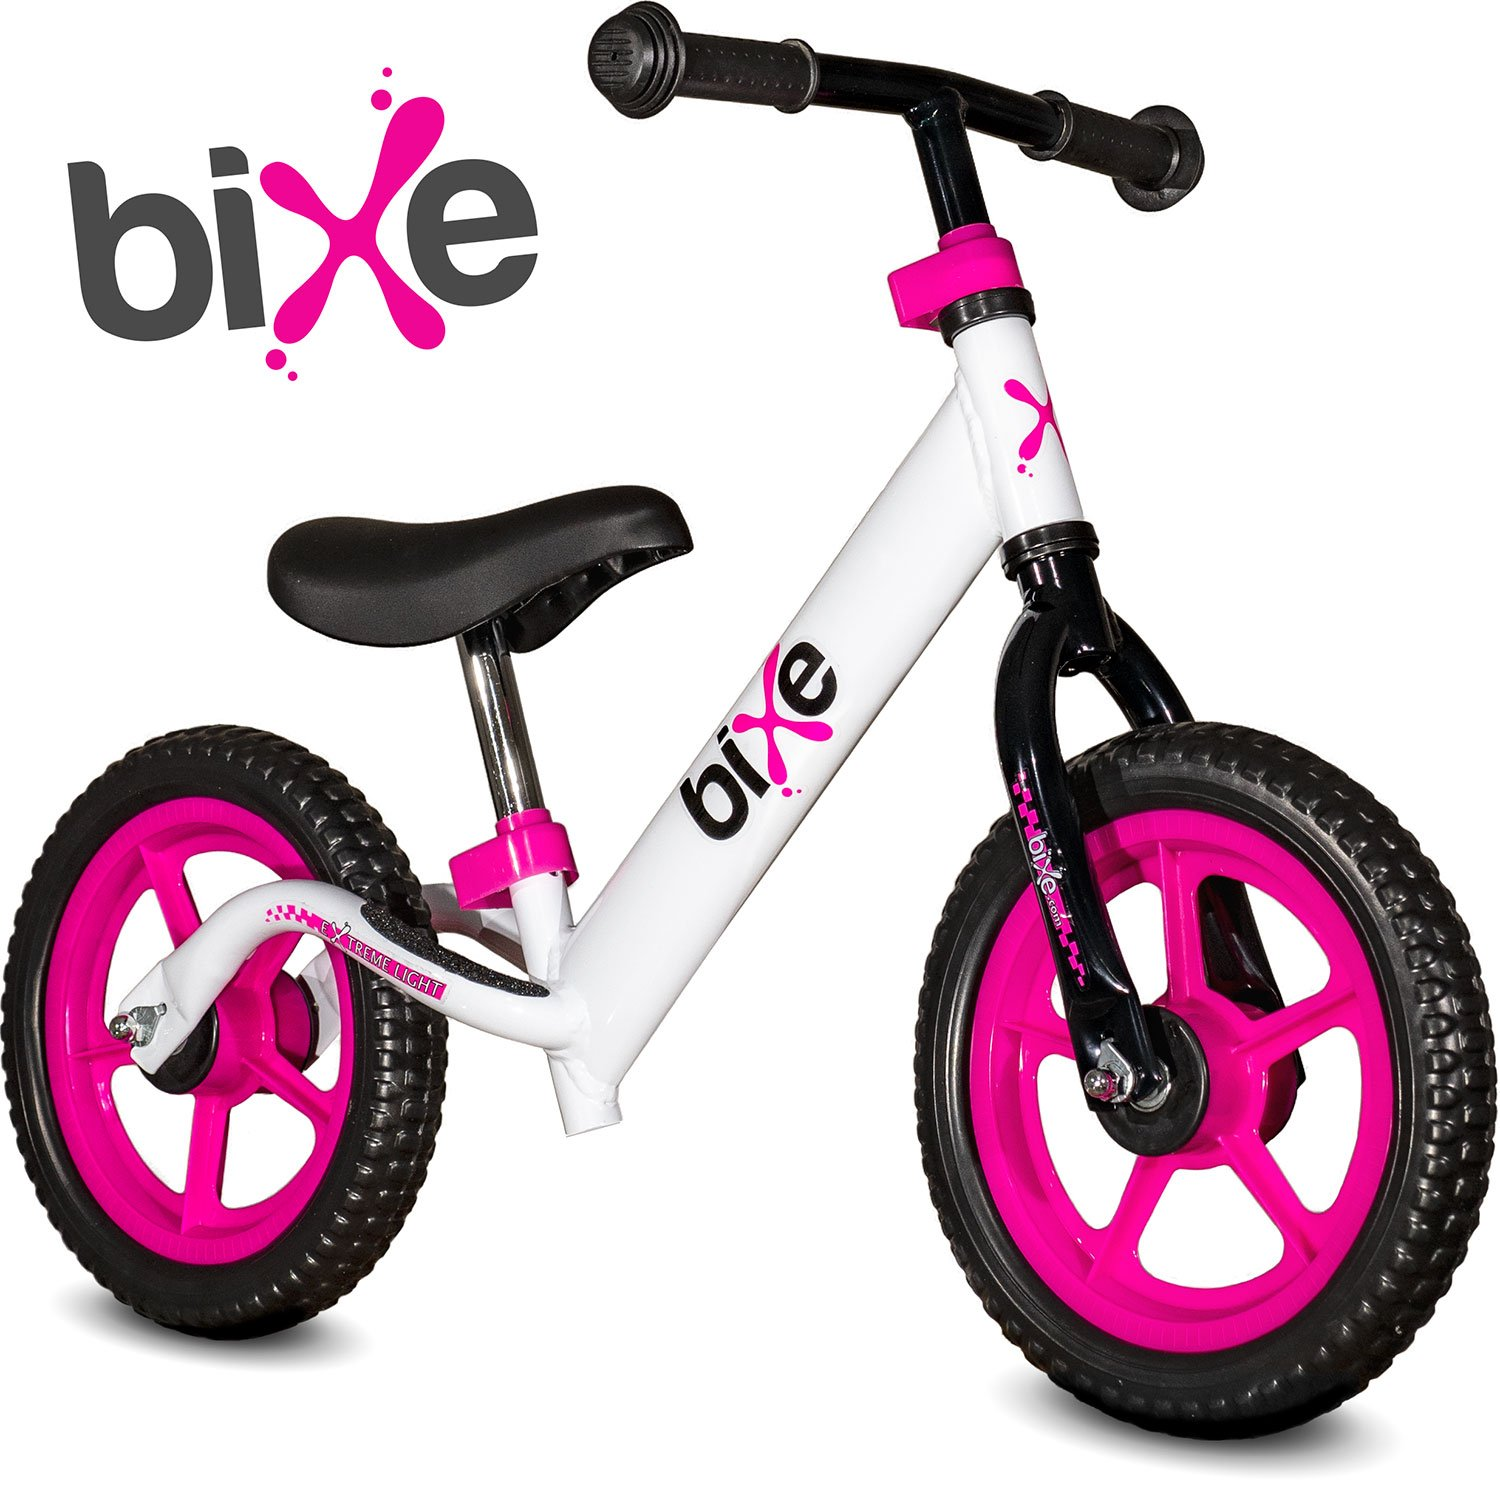 Bixe Extreme Light 4 lb Balance Bike for Kids and Toddlers 18 Months to 5 Years